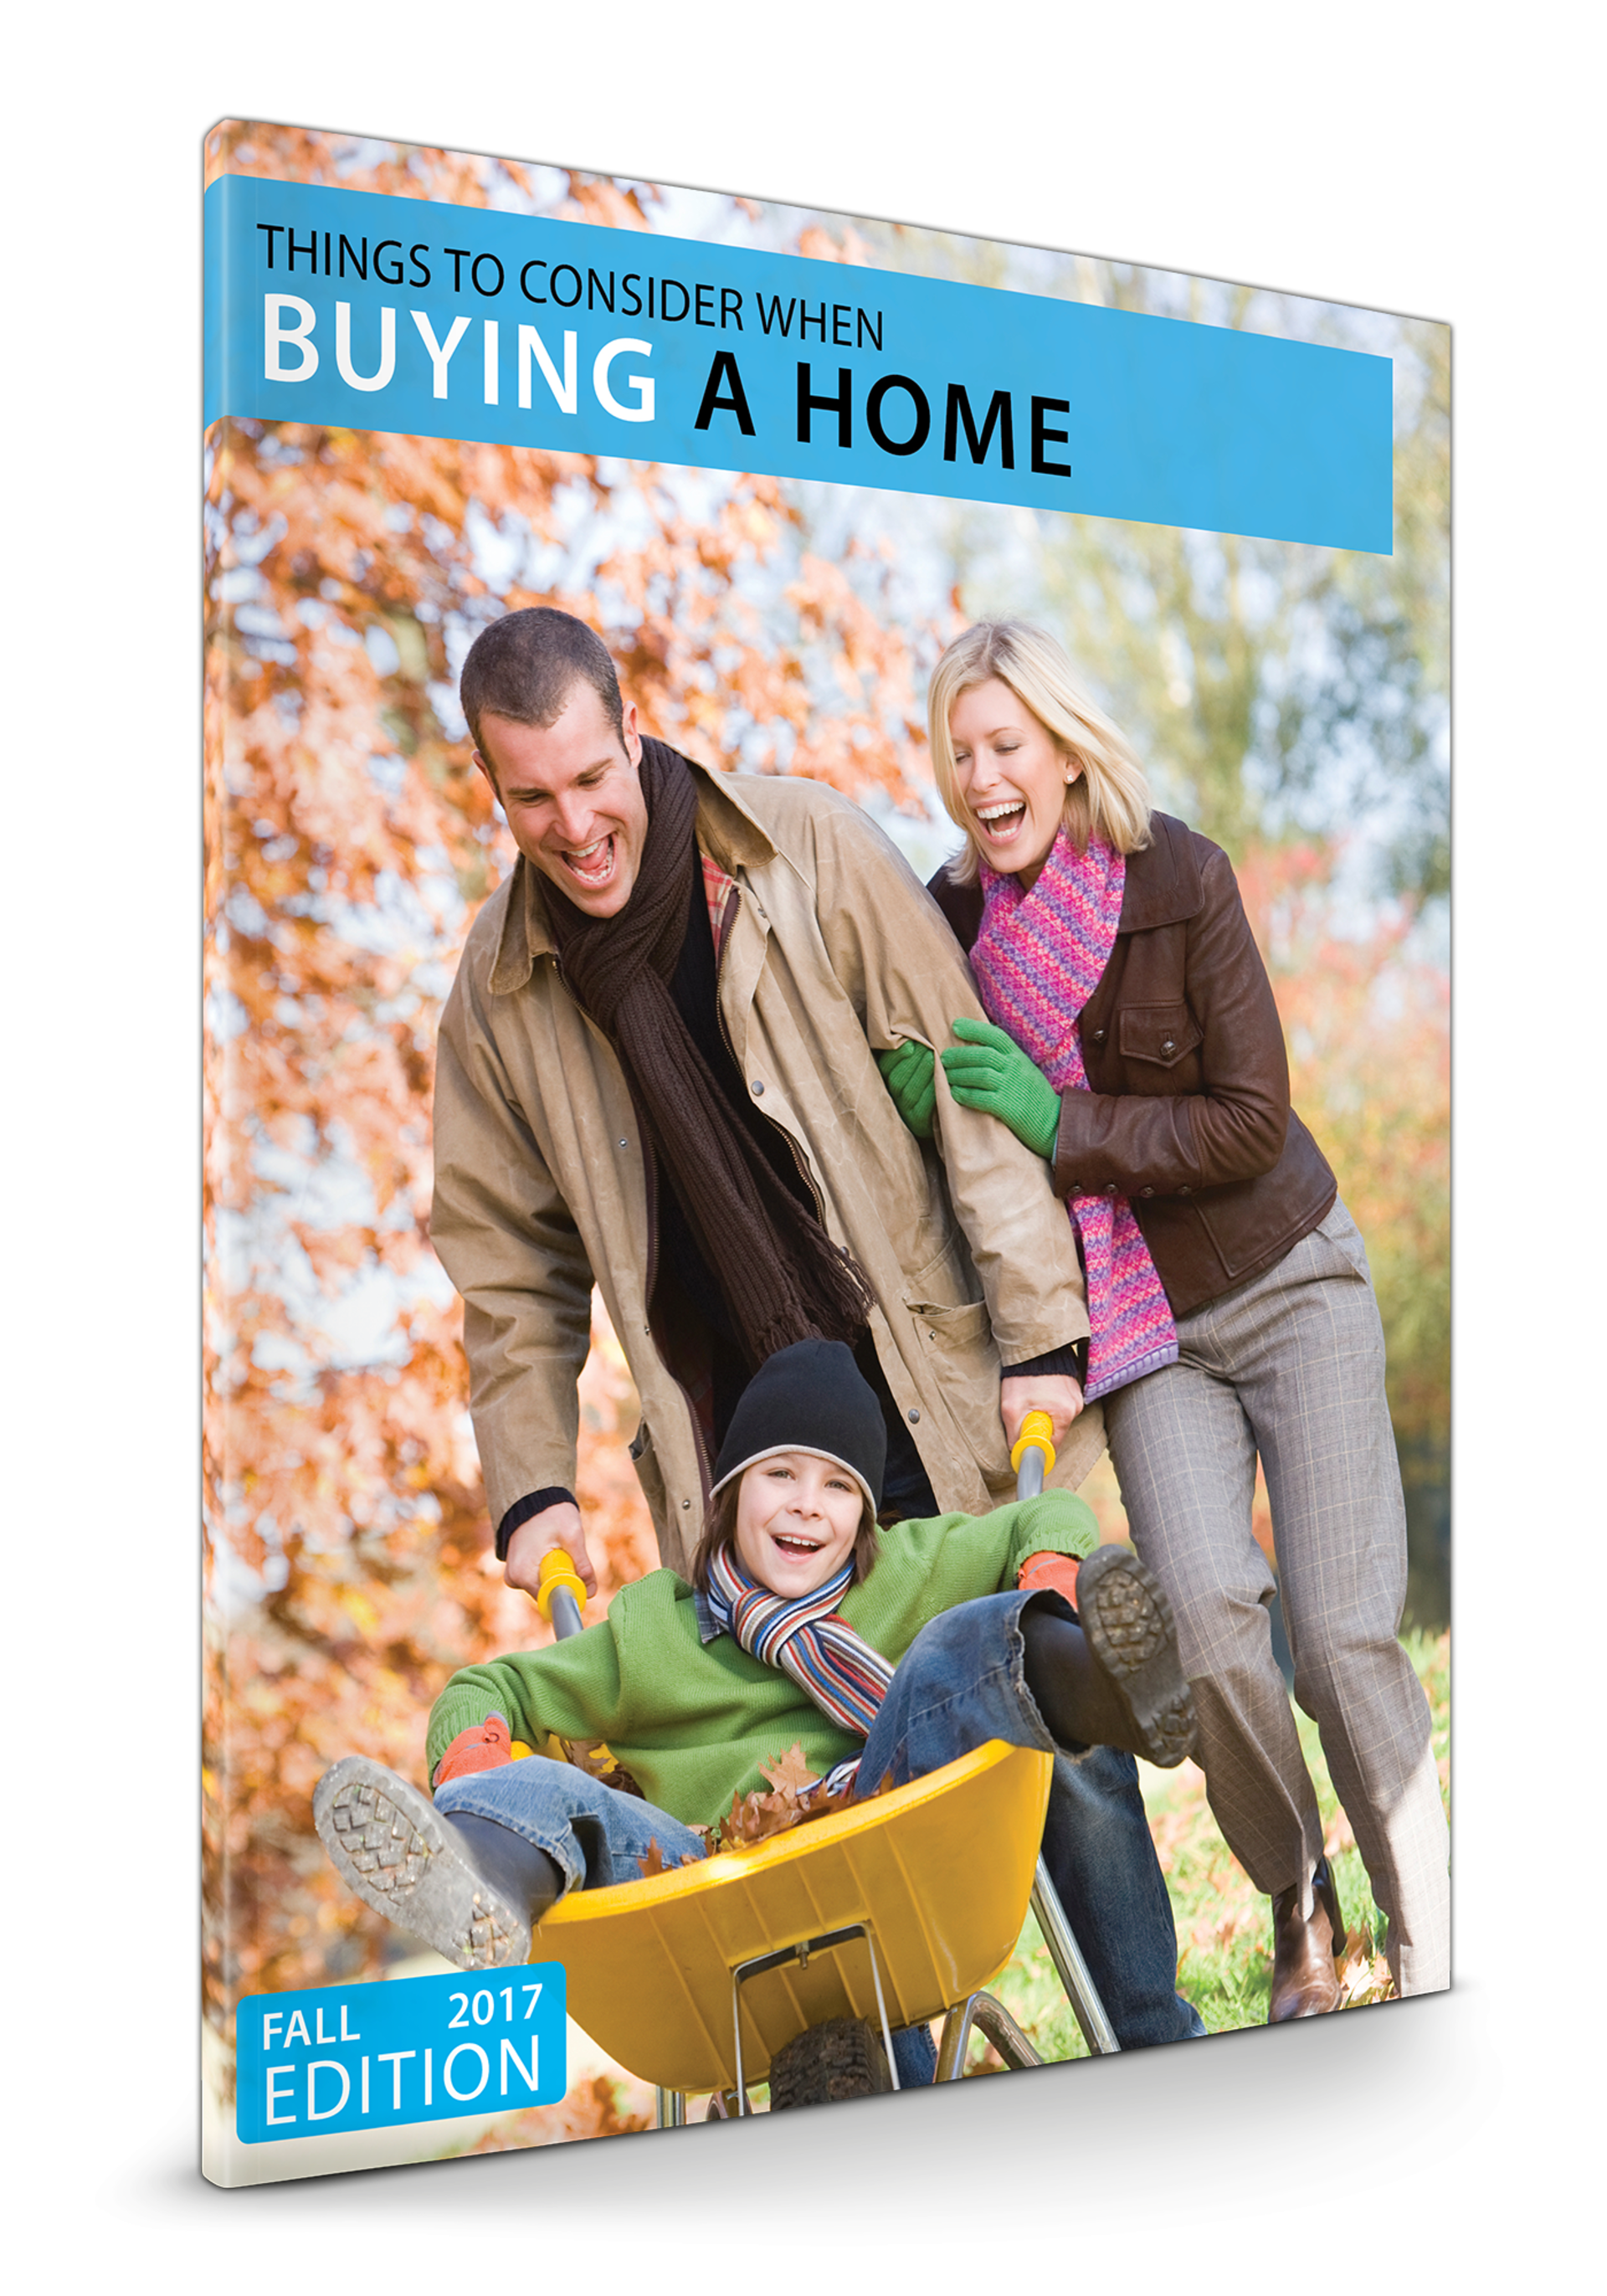 The Mike Russell & Associates Fall 2017 Home Buyers Guide is Now Available